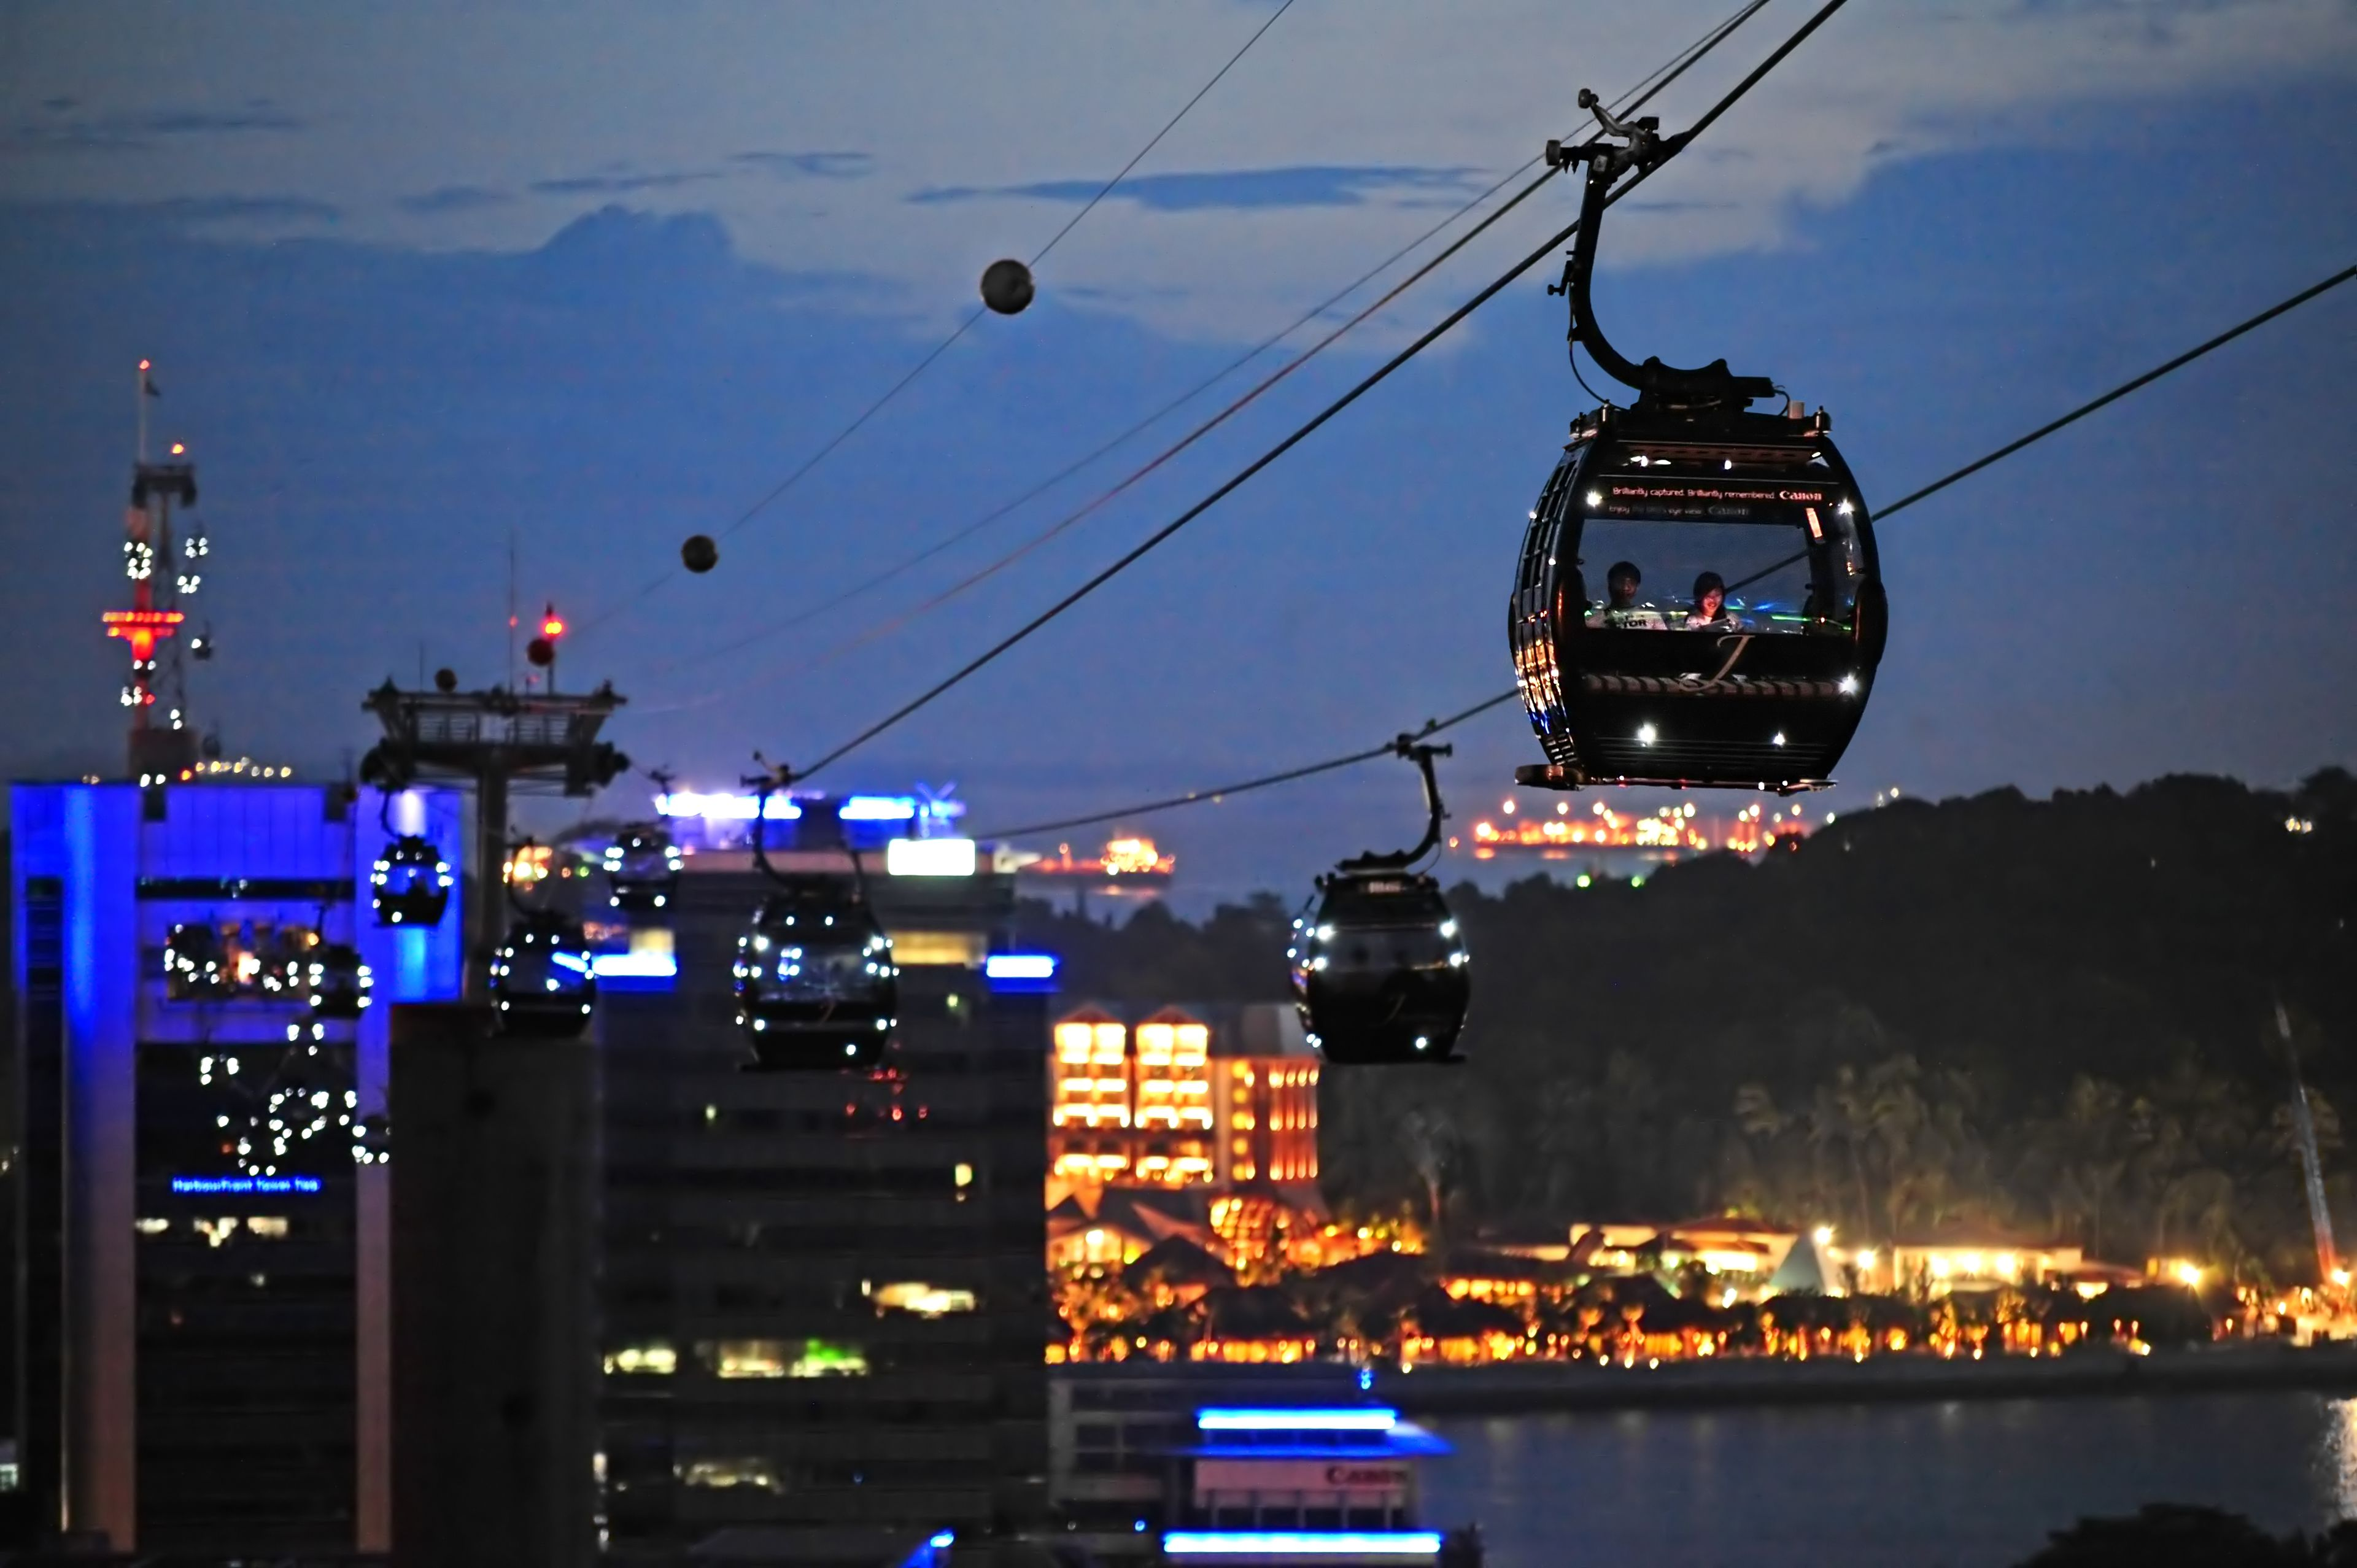 Evening views of the Singapore Cable Car